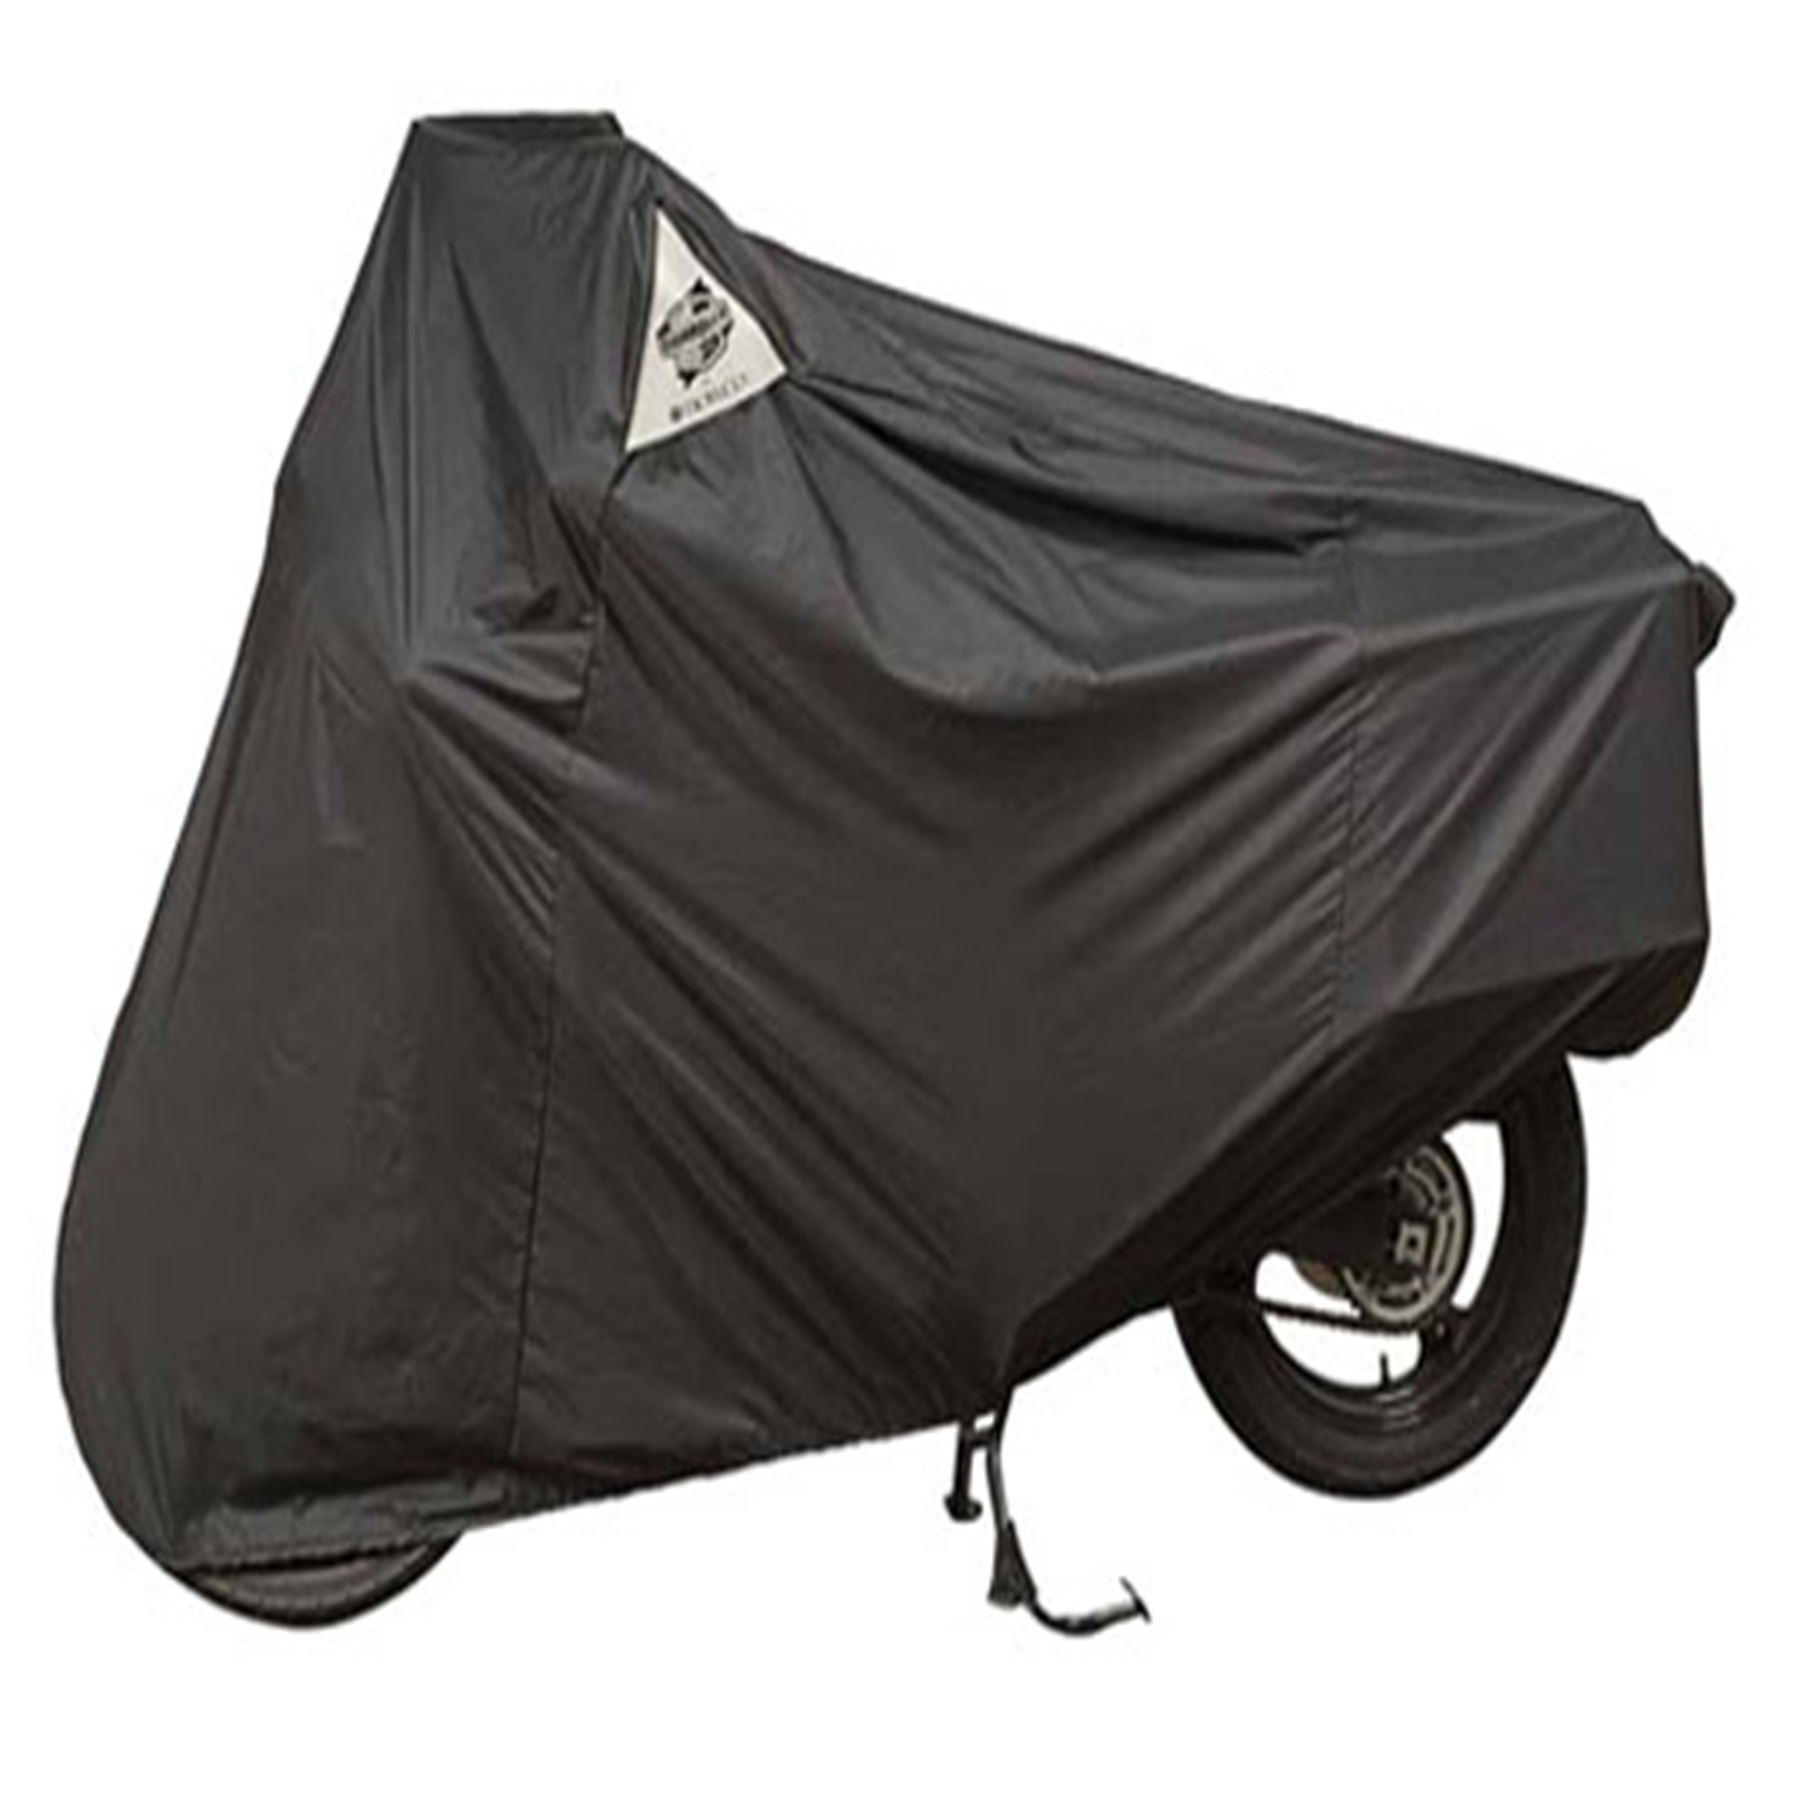 Guardian 5000402 WeatherAll Plus Extra Large RV Motorcycle Cover